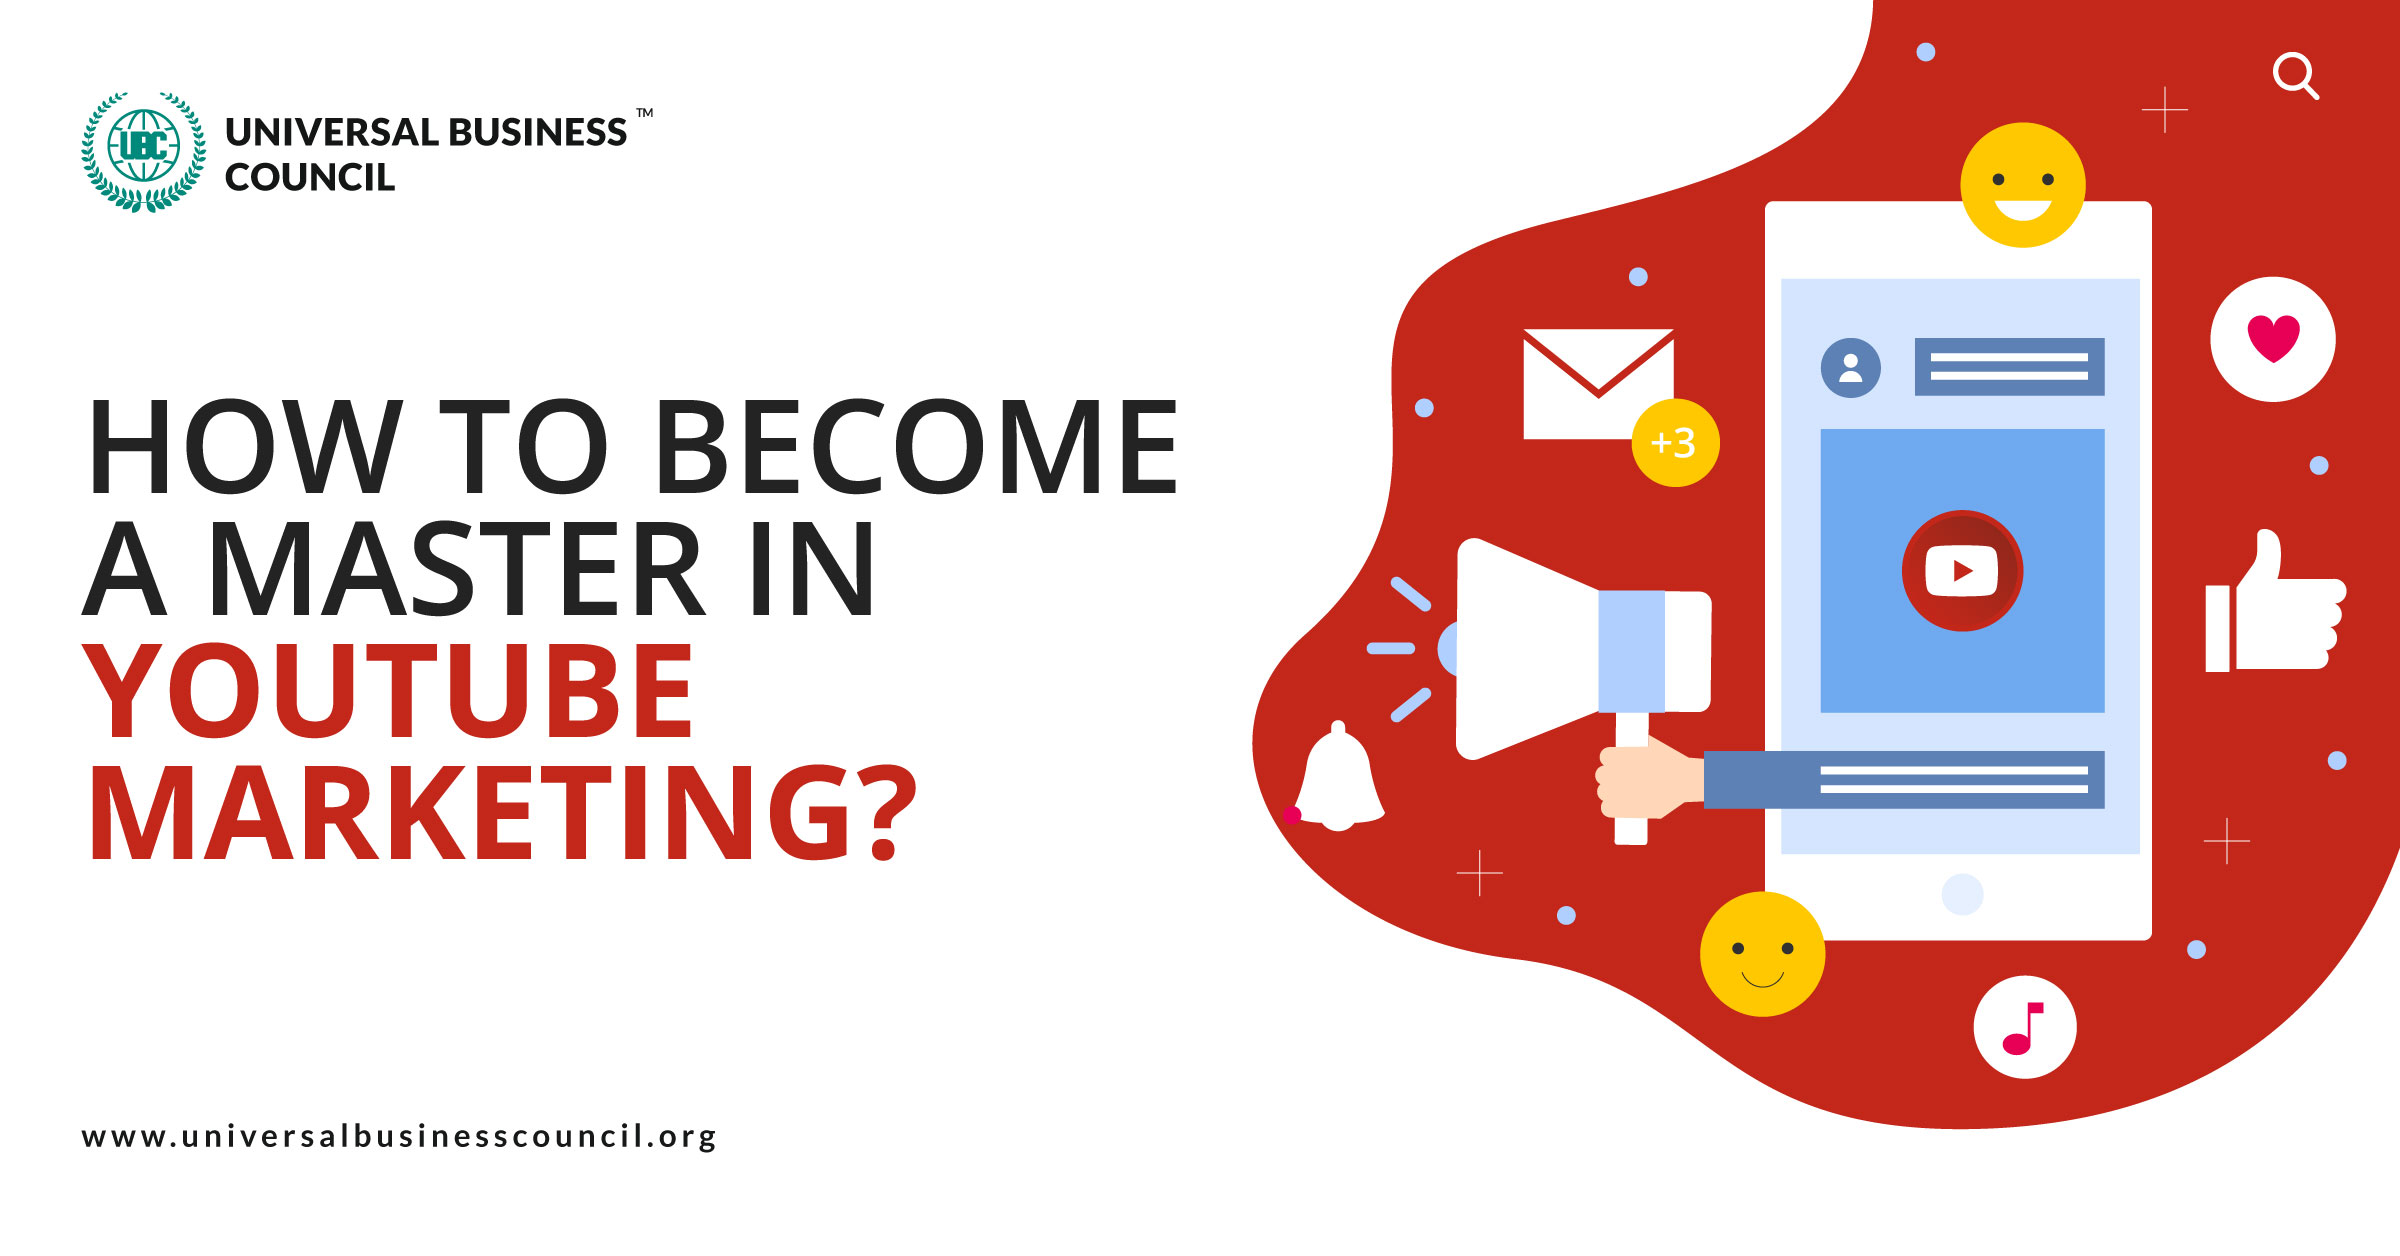 How-To-Become-A-Master-In-YouTube-Marketing